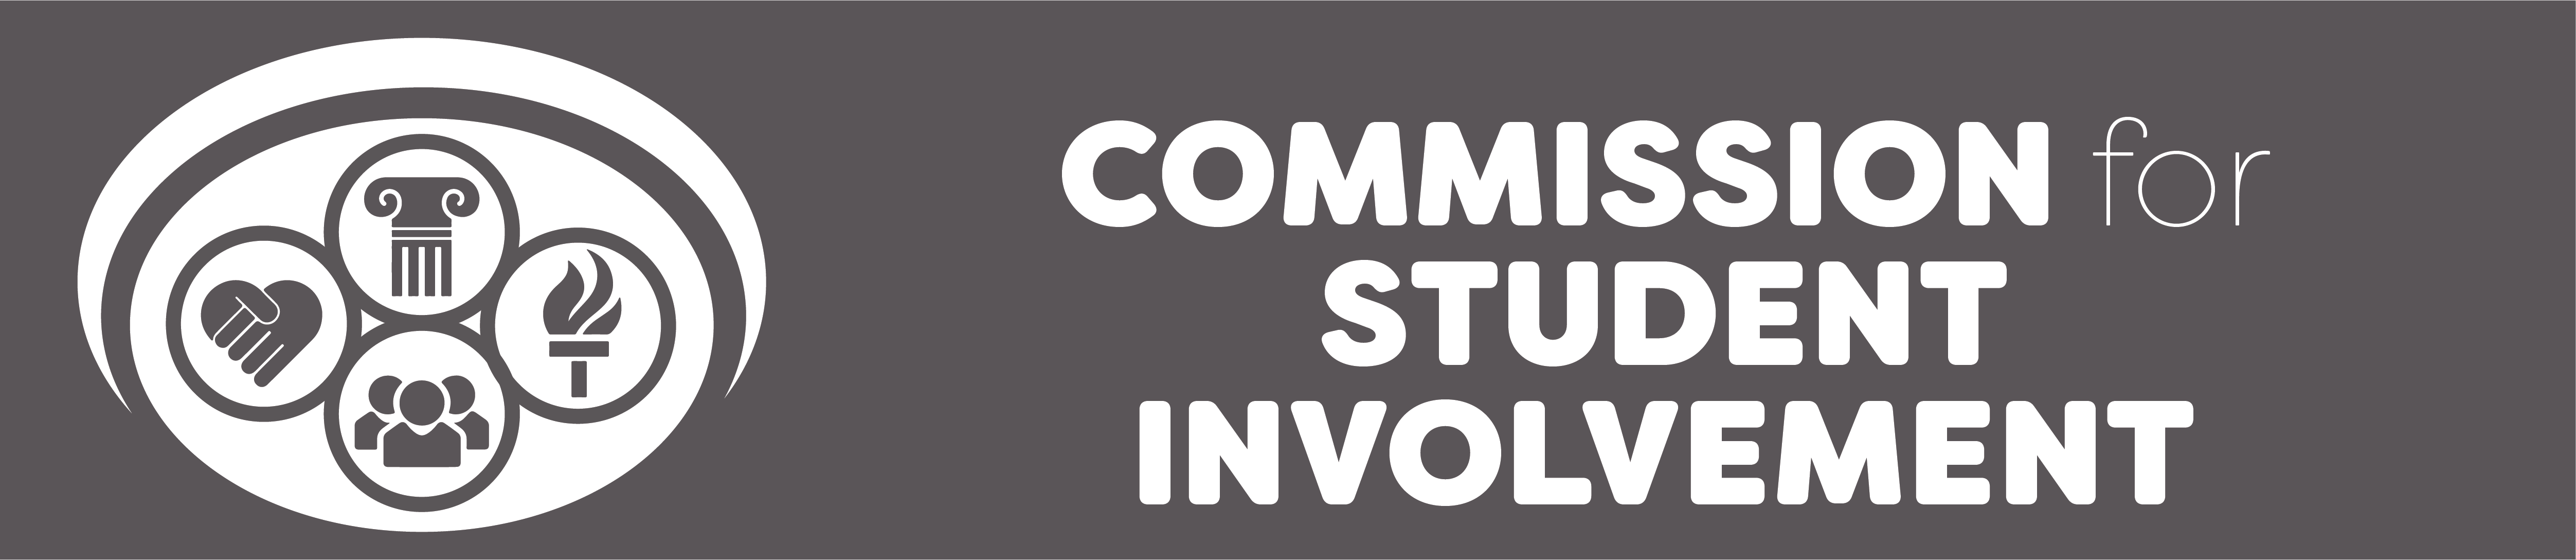 Commission for Student Involvement